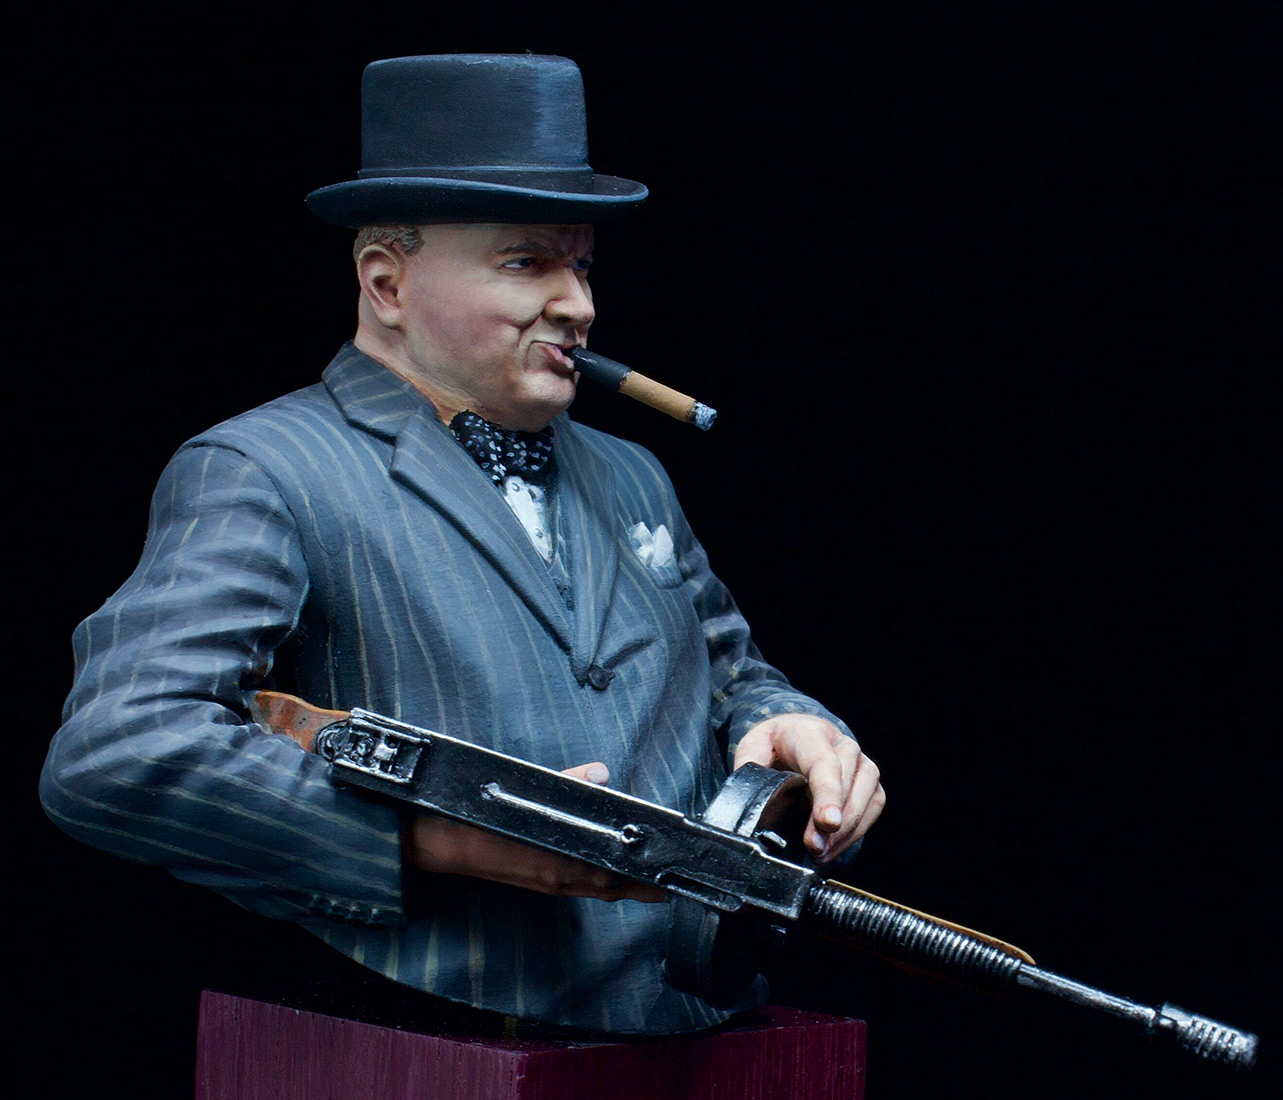 Figures: Winston Churchill with Thompson SMG, 1940, photo #2